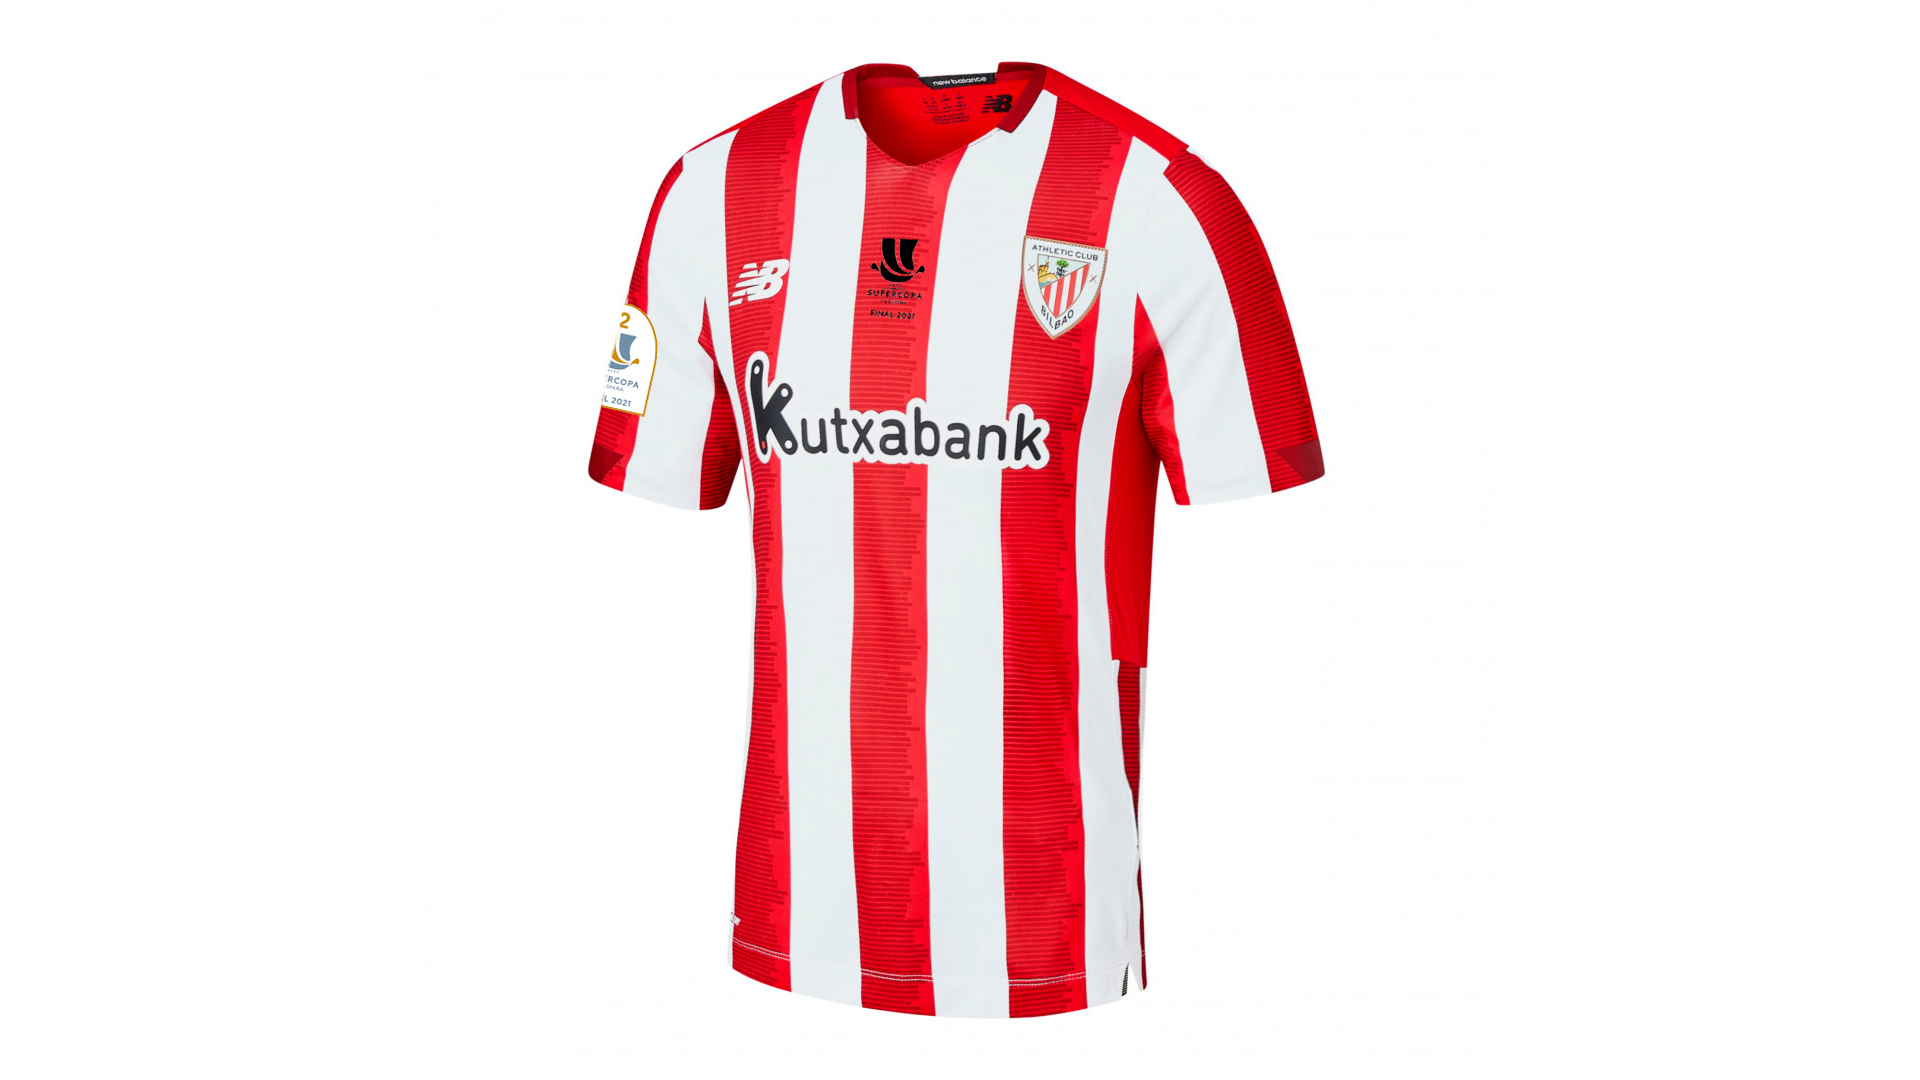 Special edition Supercopa jersey